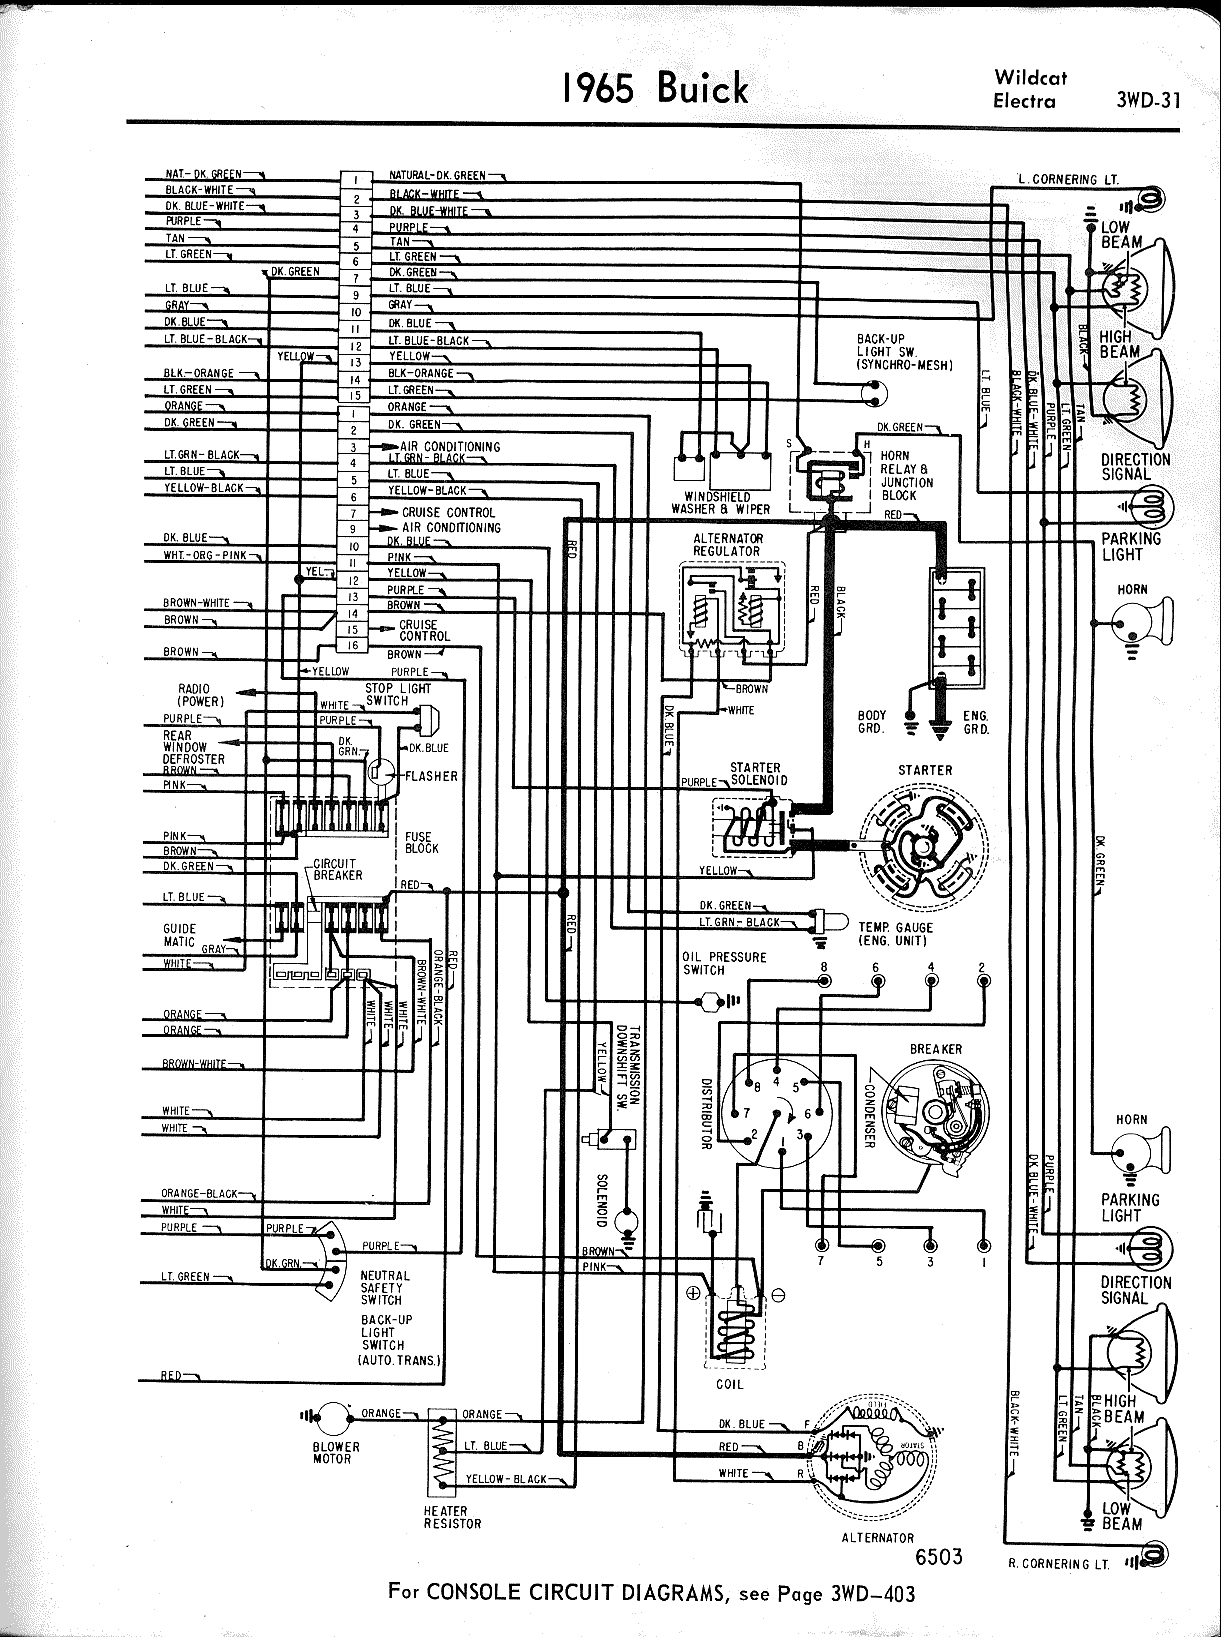 1990 Buick Reatta Wiring Diagram | New Wiring Resources 2019 on